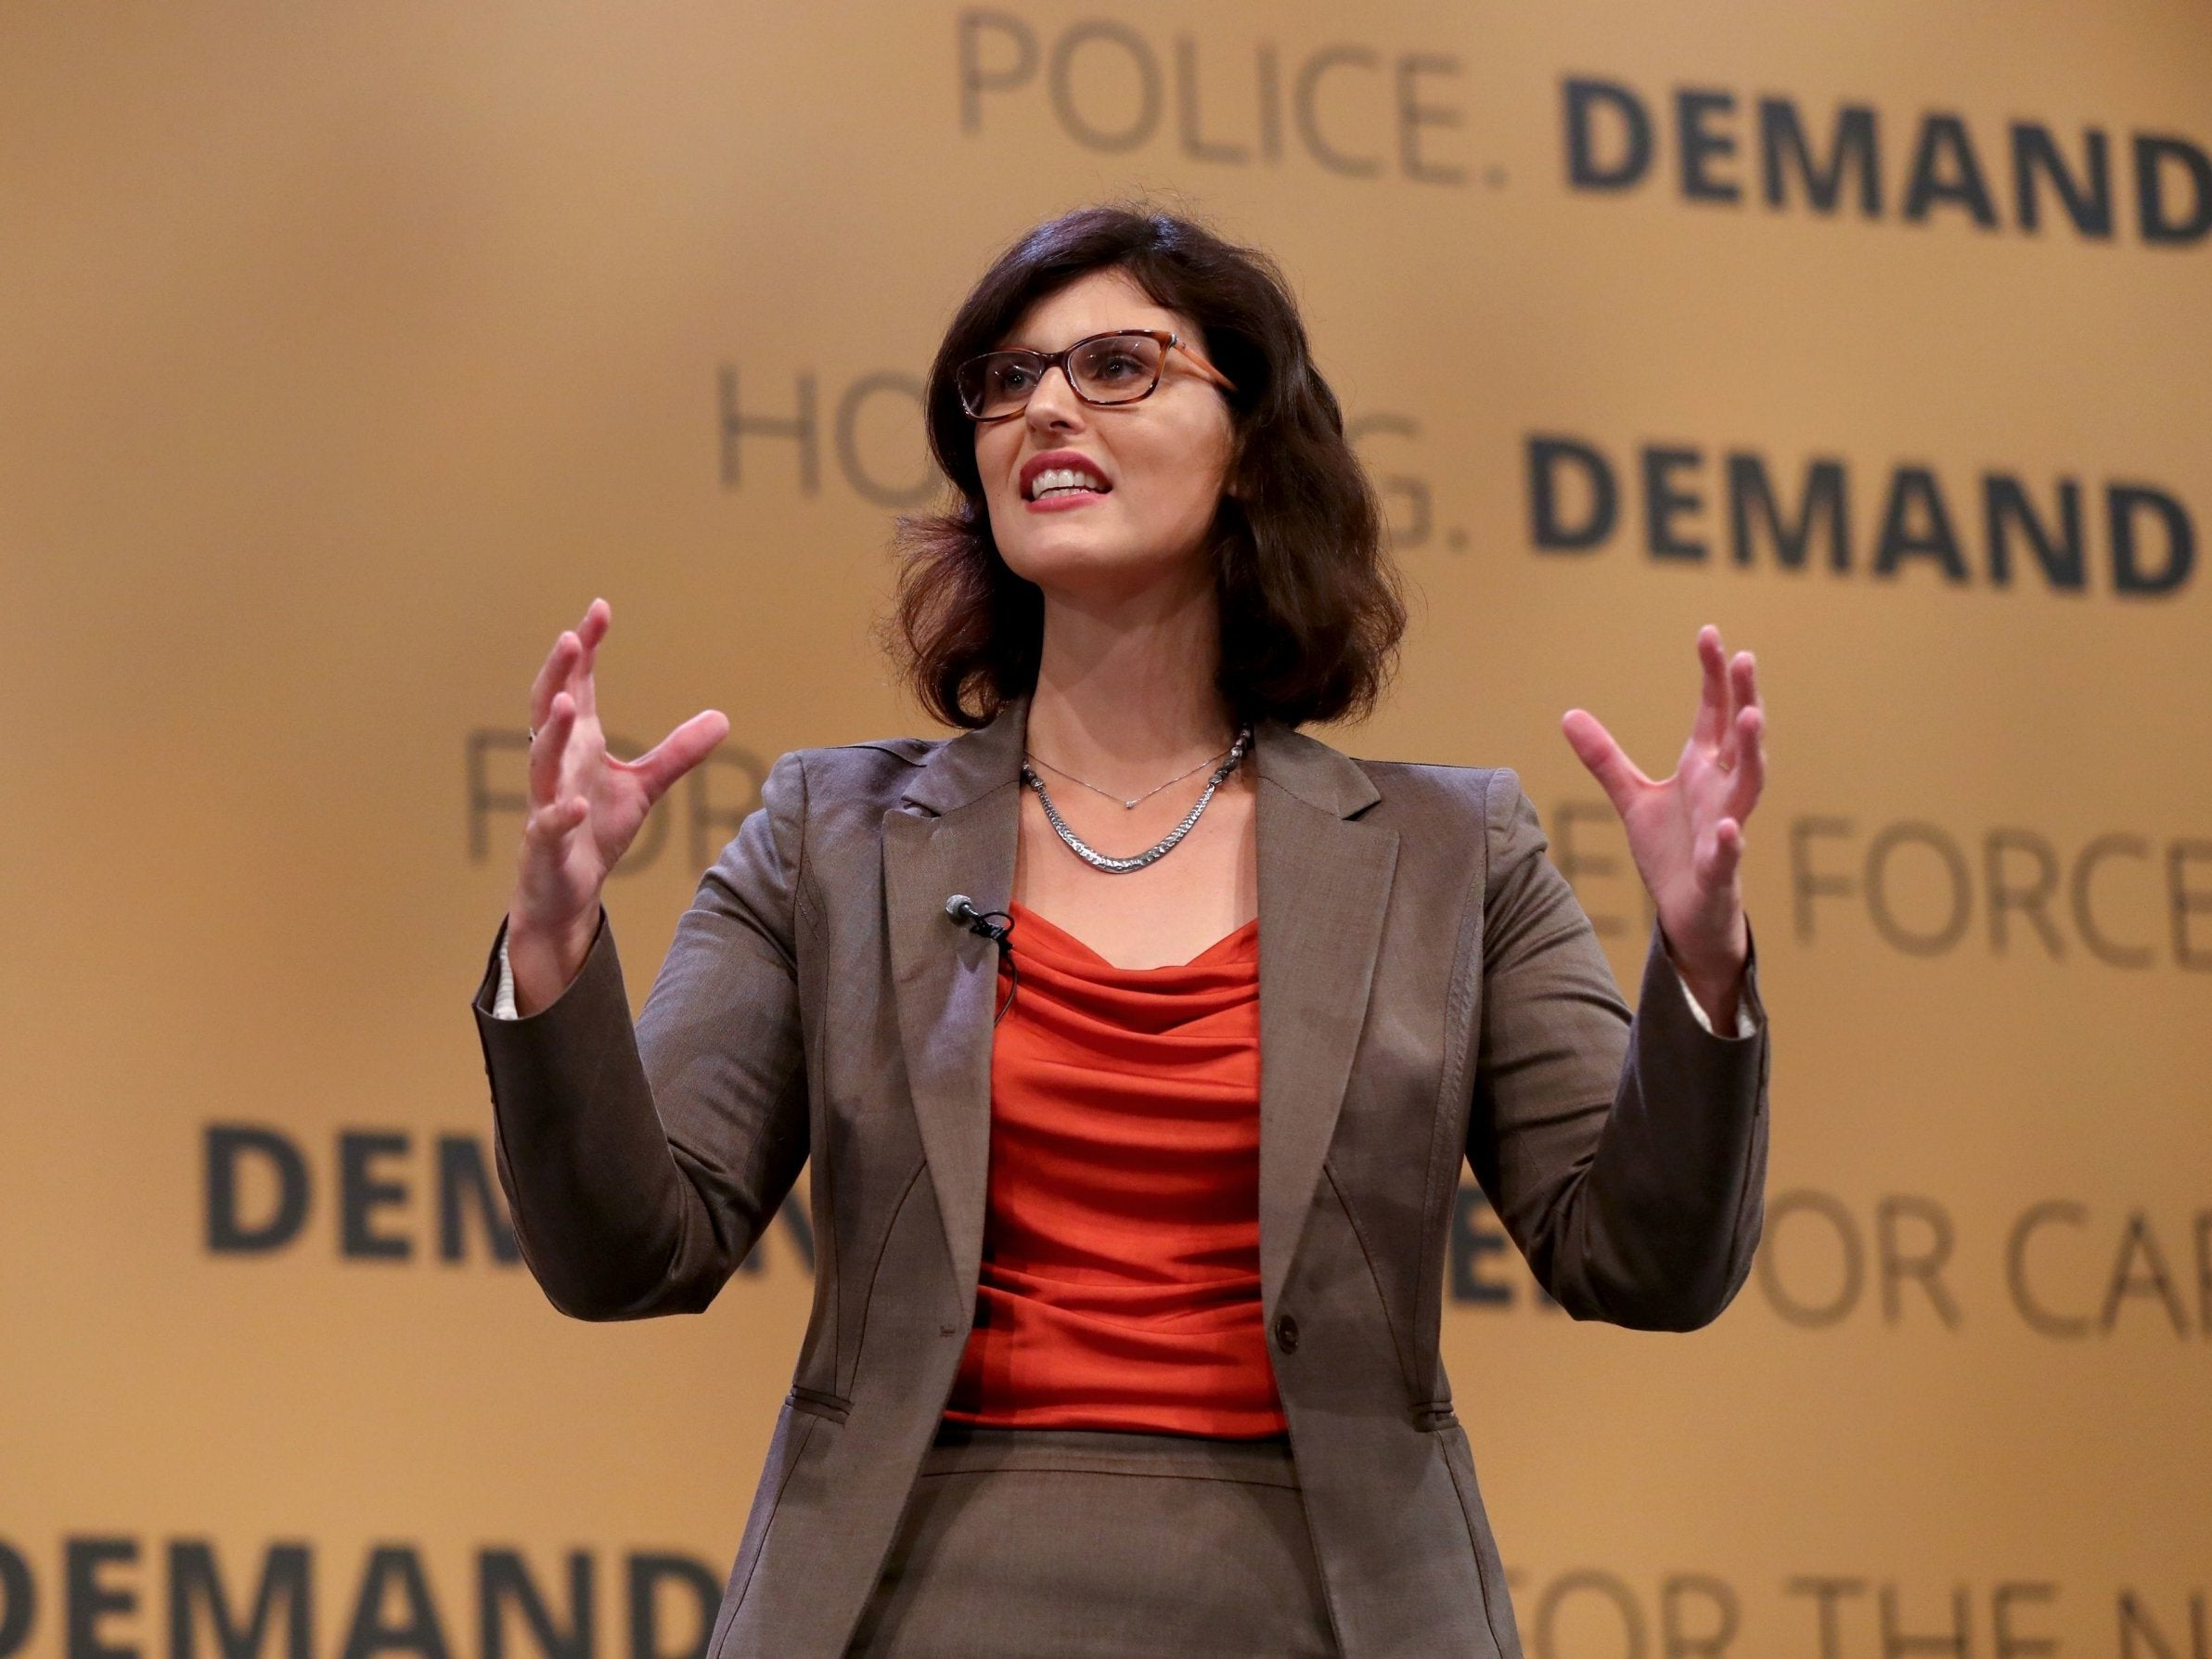 Layla Moran: If Labour and the Lib Dems worked together, we'd be unstoppable